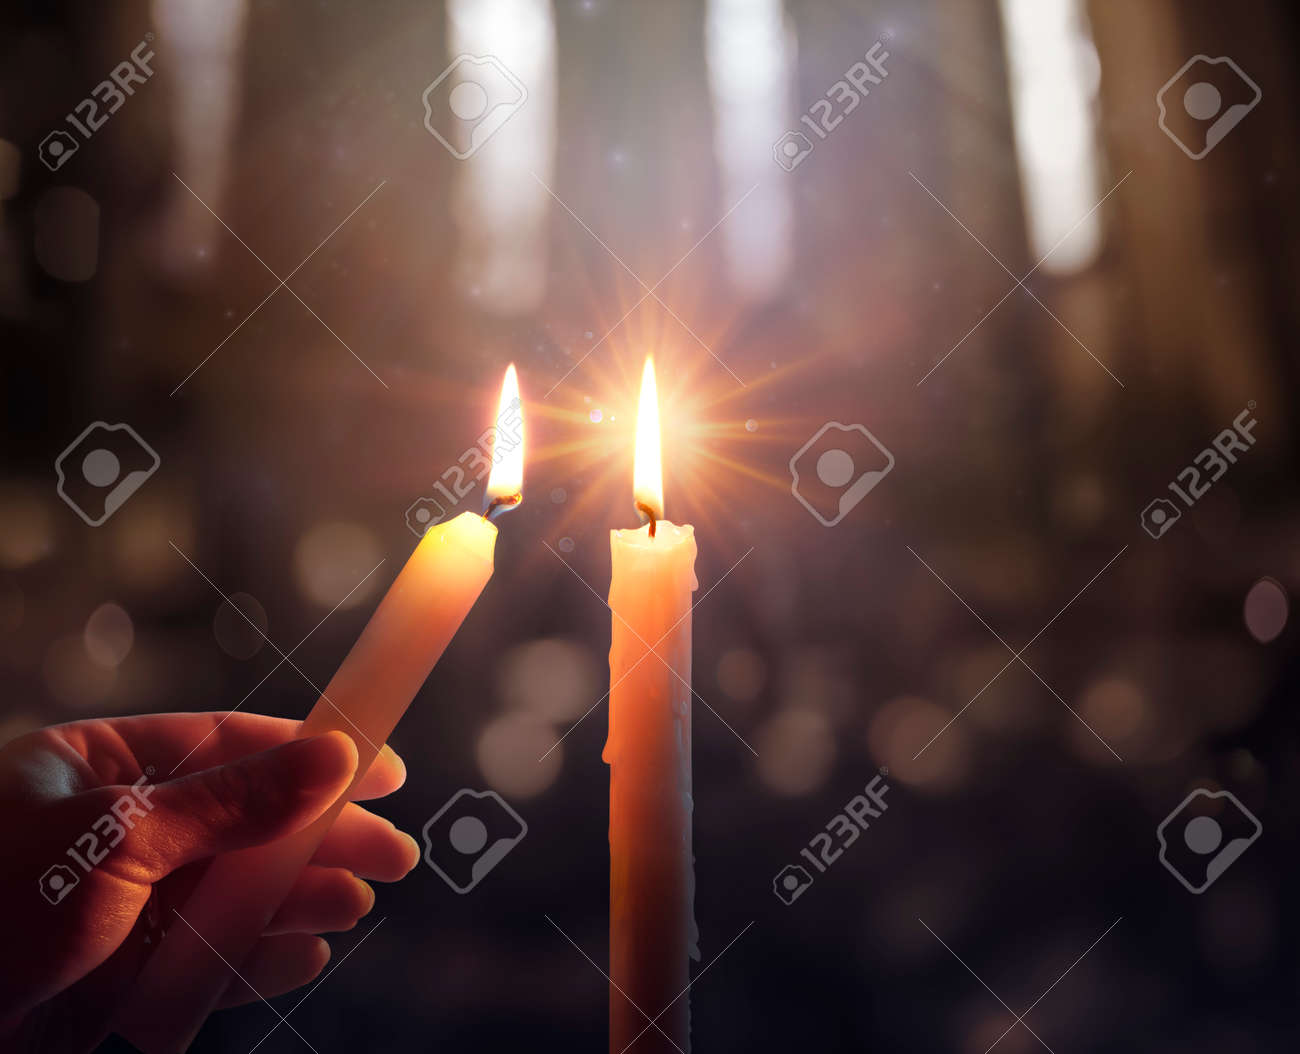 Defocused Hope Concept - Hand Igniting A Candle With Shining Flame And Blurry Lights - 160247912